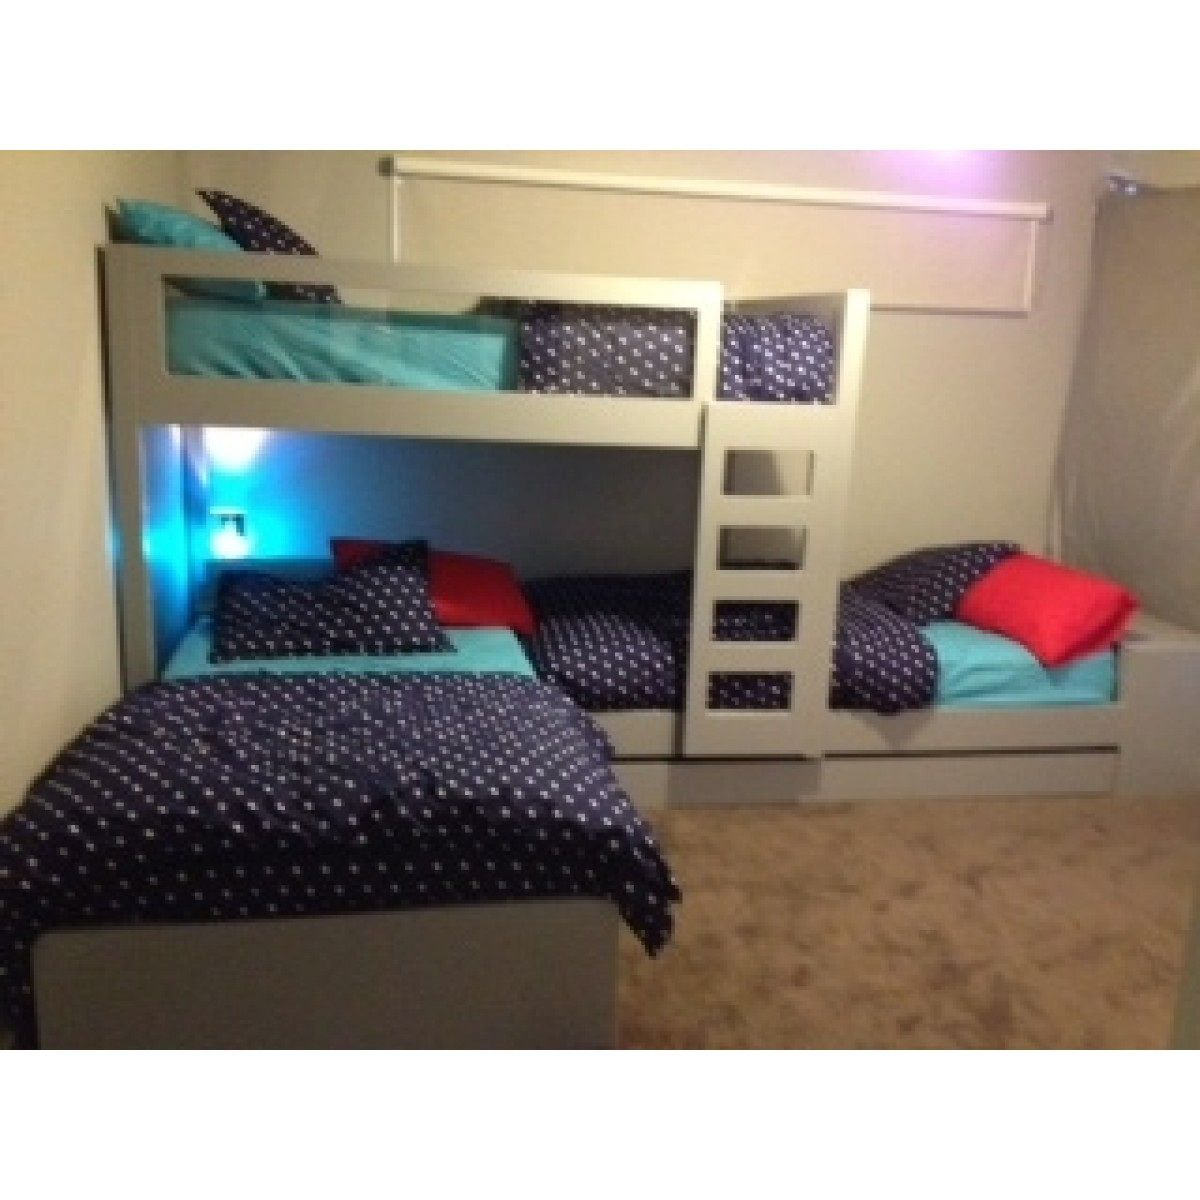 99 Used Rv With Bunk Beds For Sale Photos Of Bedrooms Interior